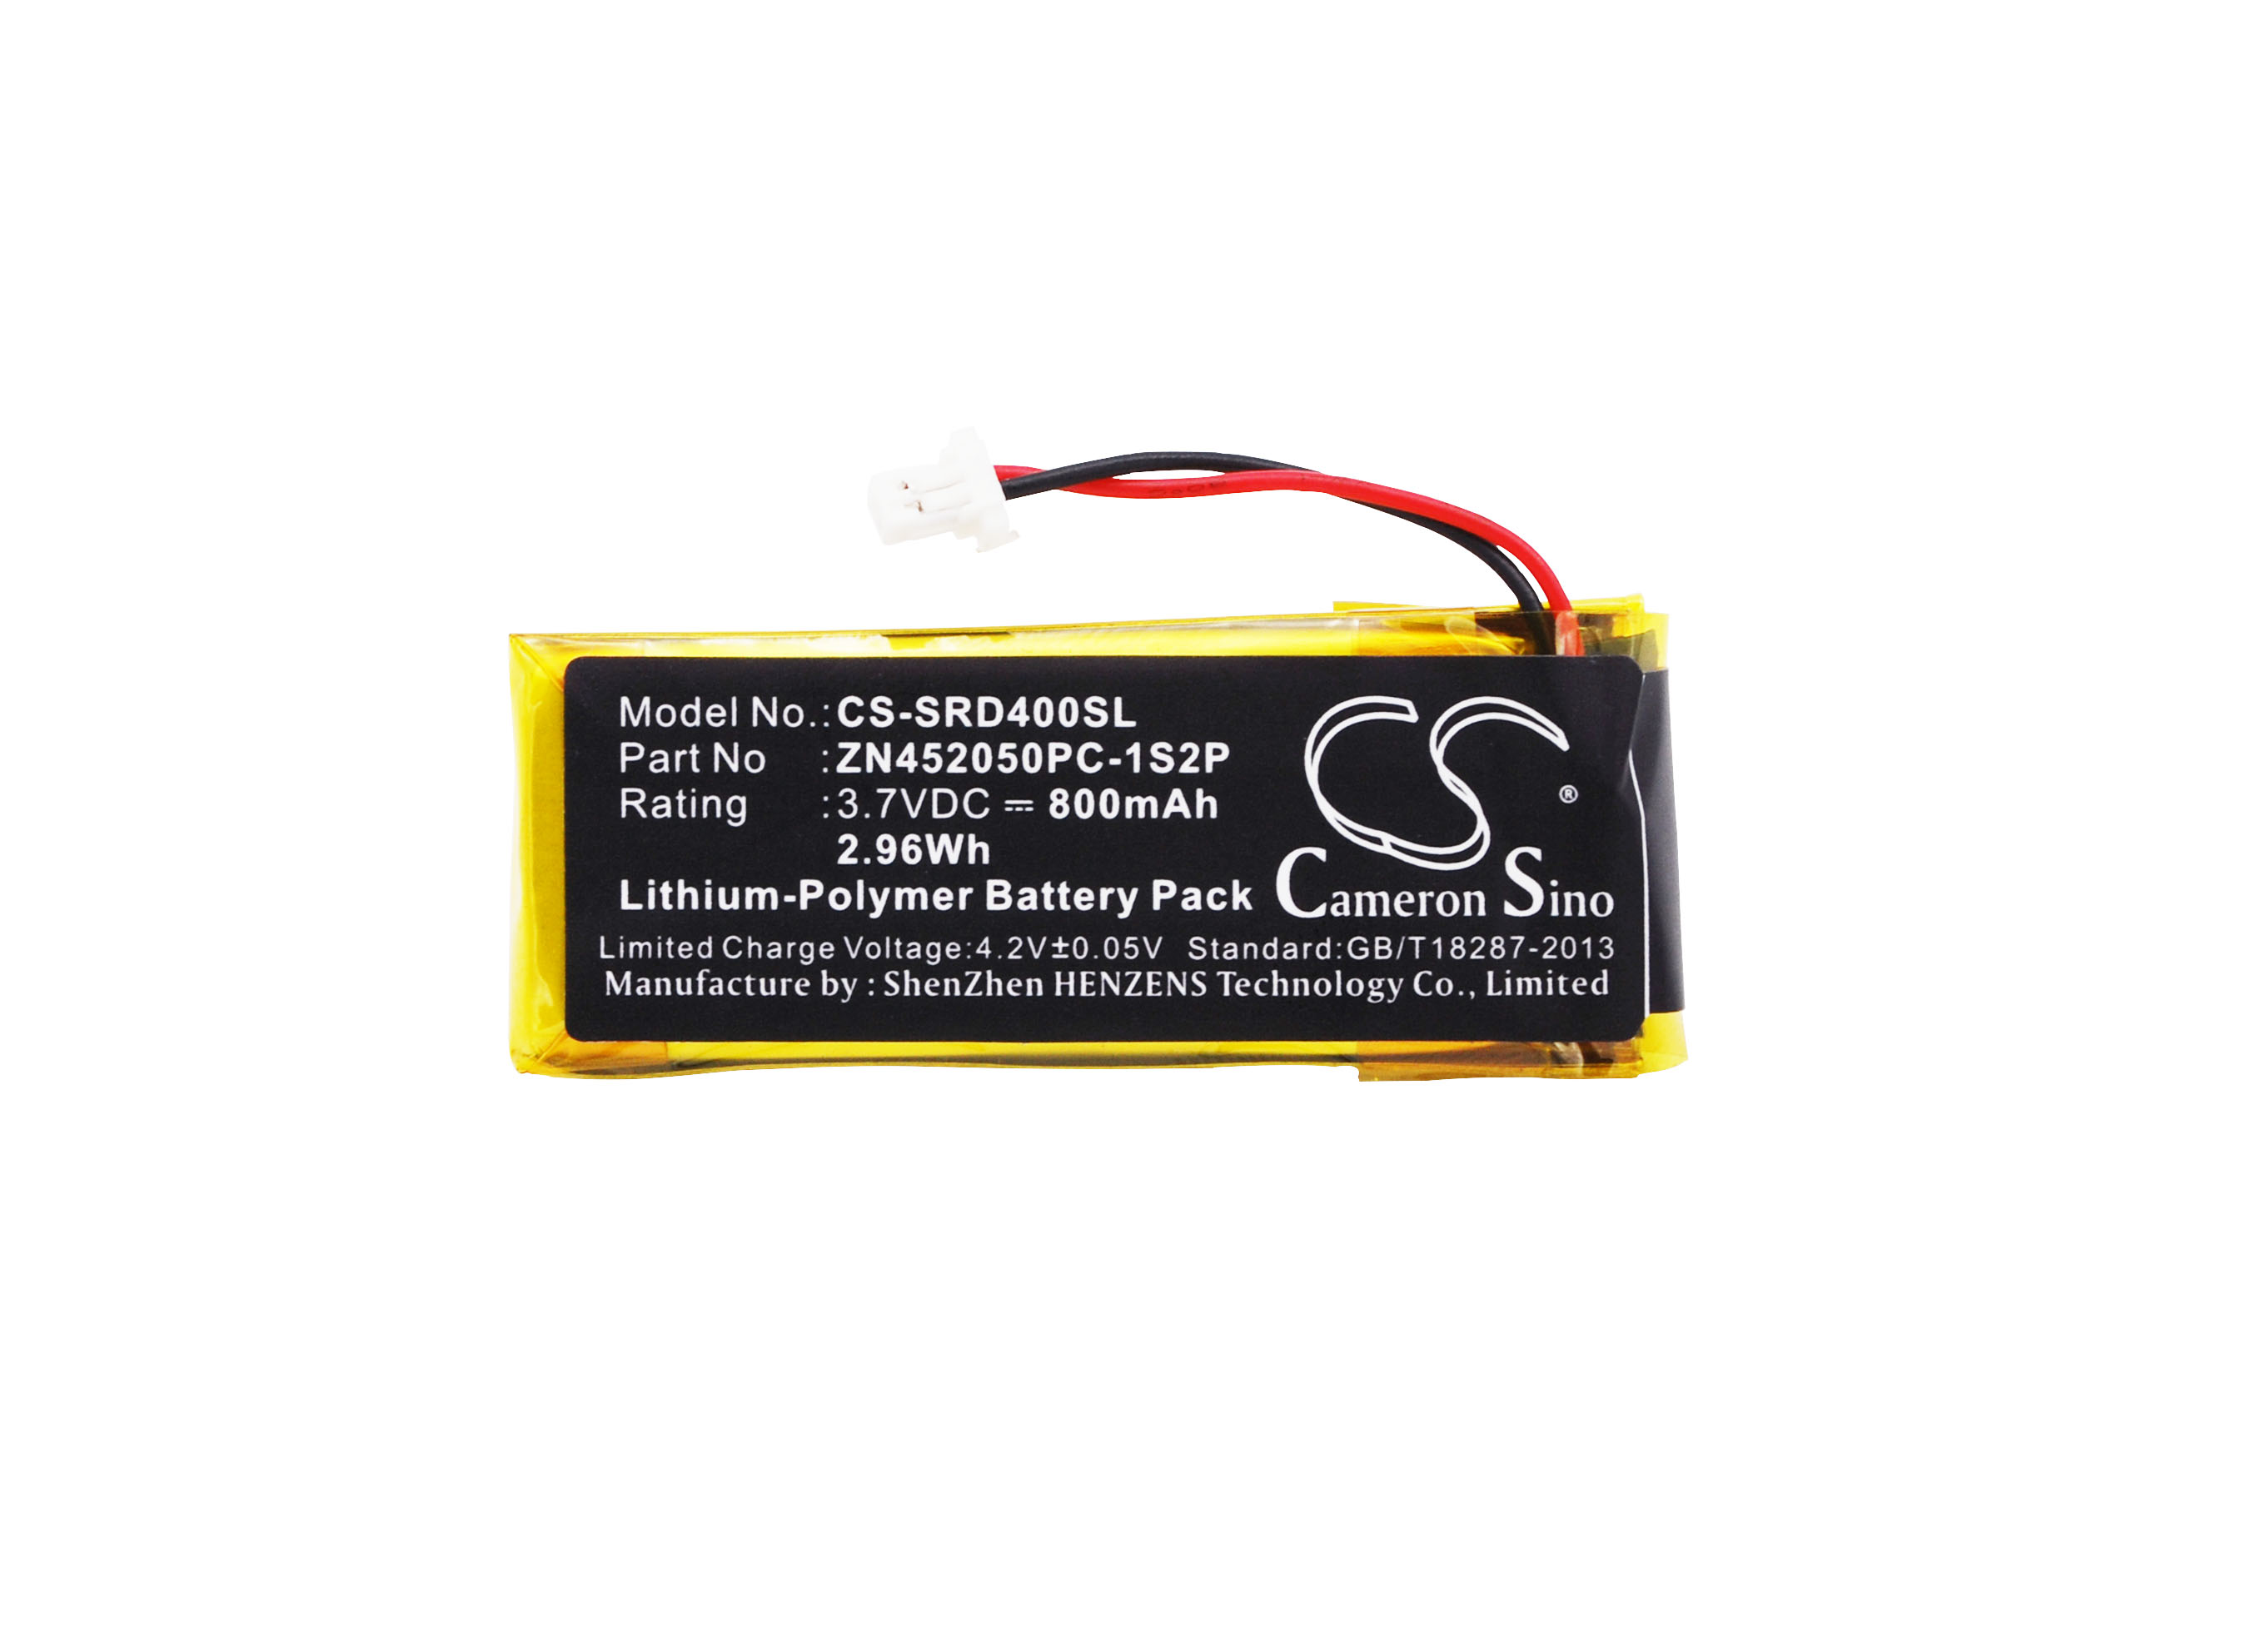 Cameron Sino 800mAh Battery ZN452050PC-1S2P for Cardo Scala Rider G4, G9, G9x, For Schuberth C3